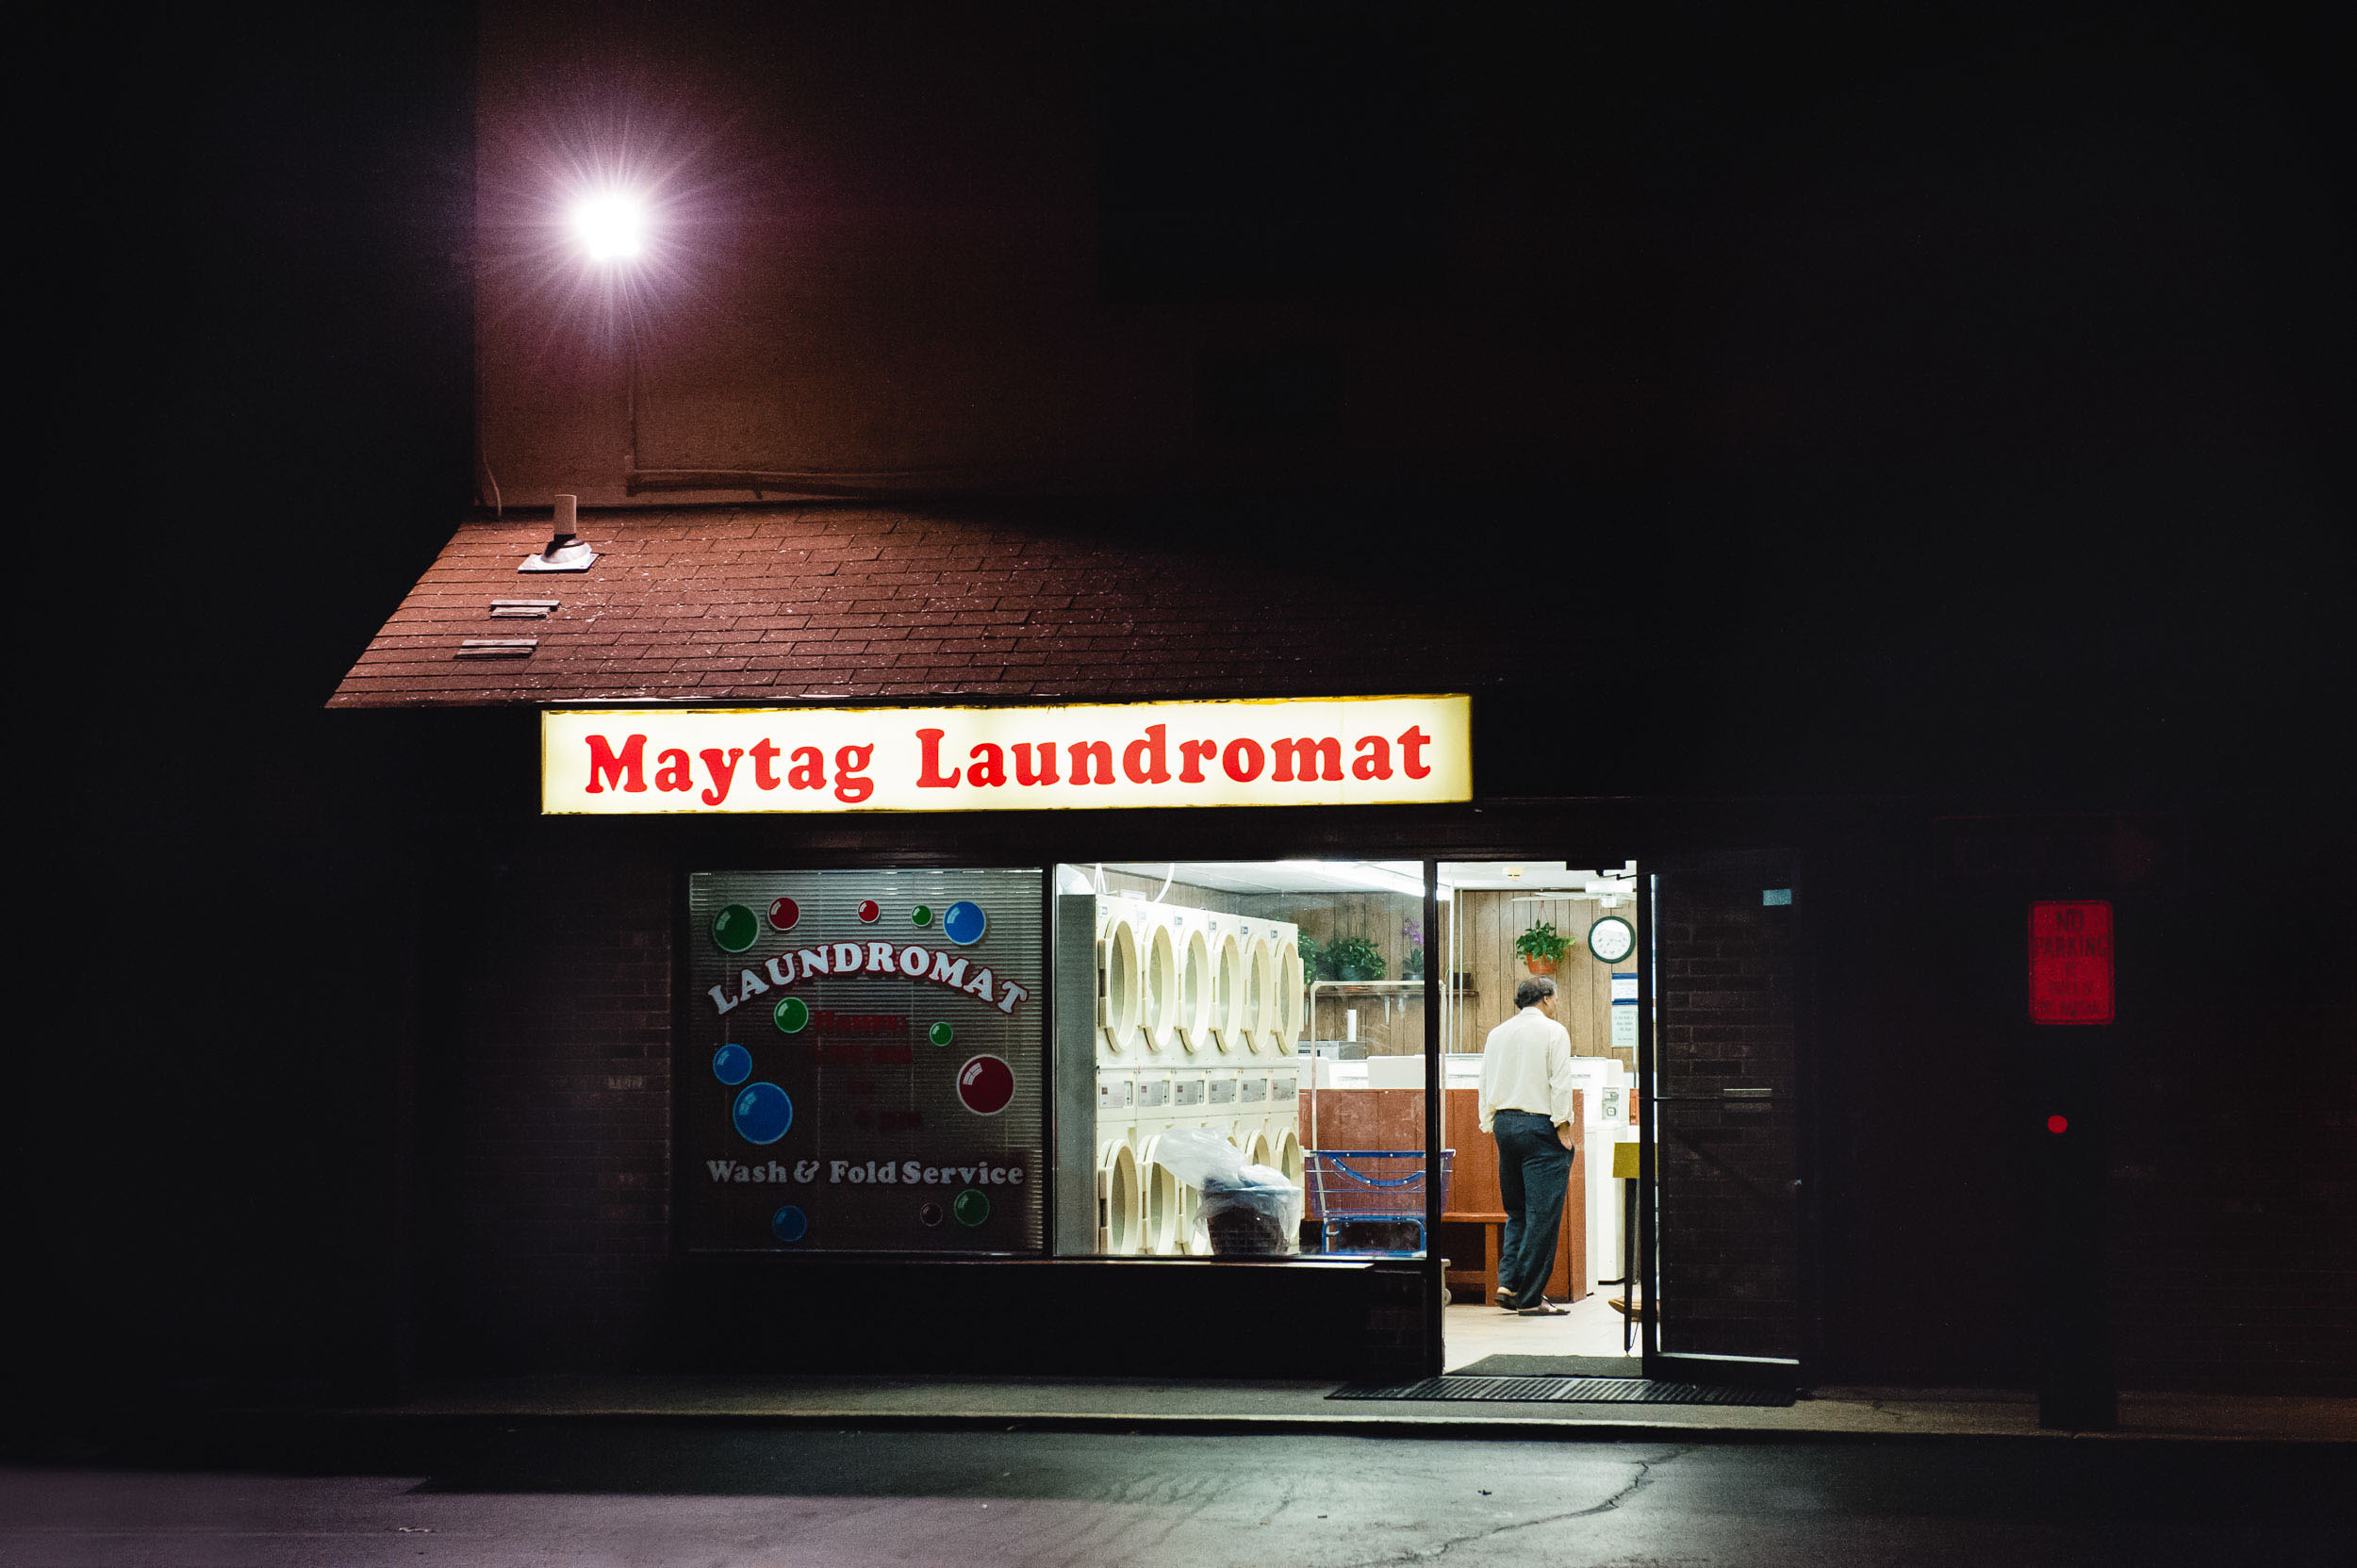 Photo of a Laundromat as part of the Inside Friday Night project